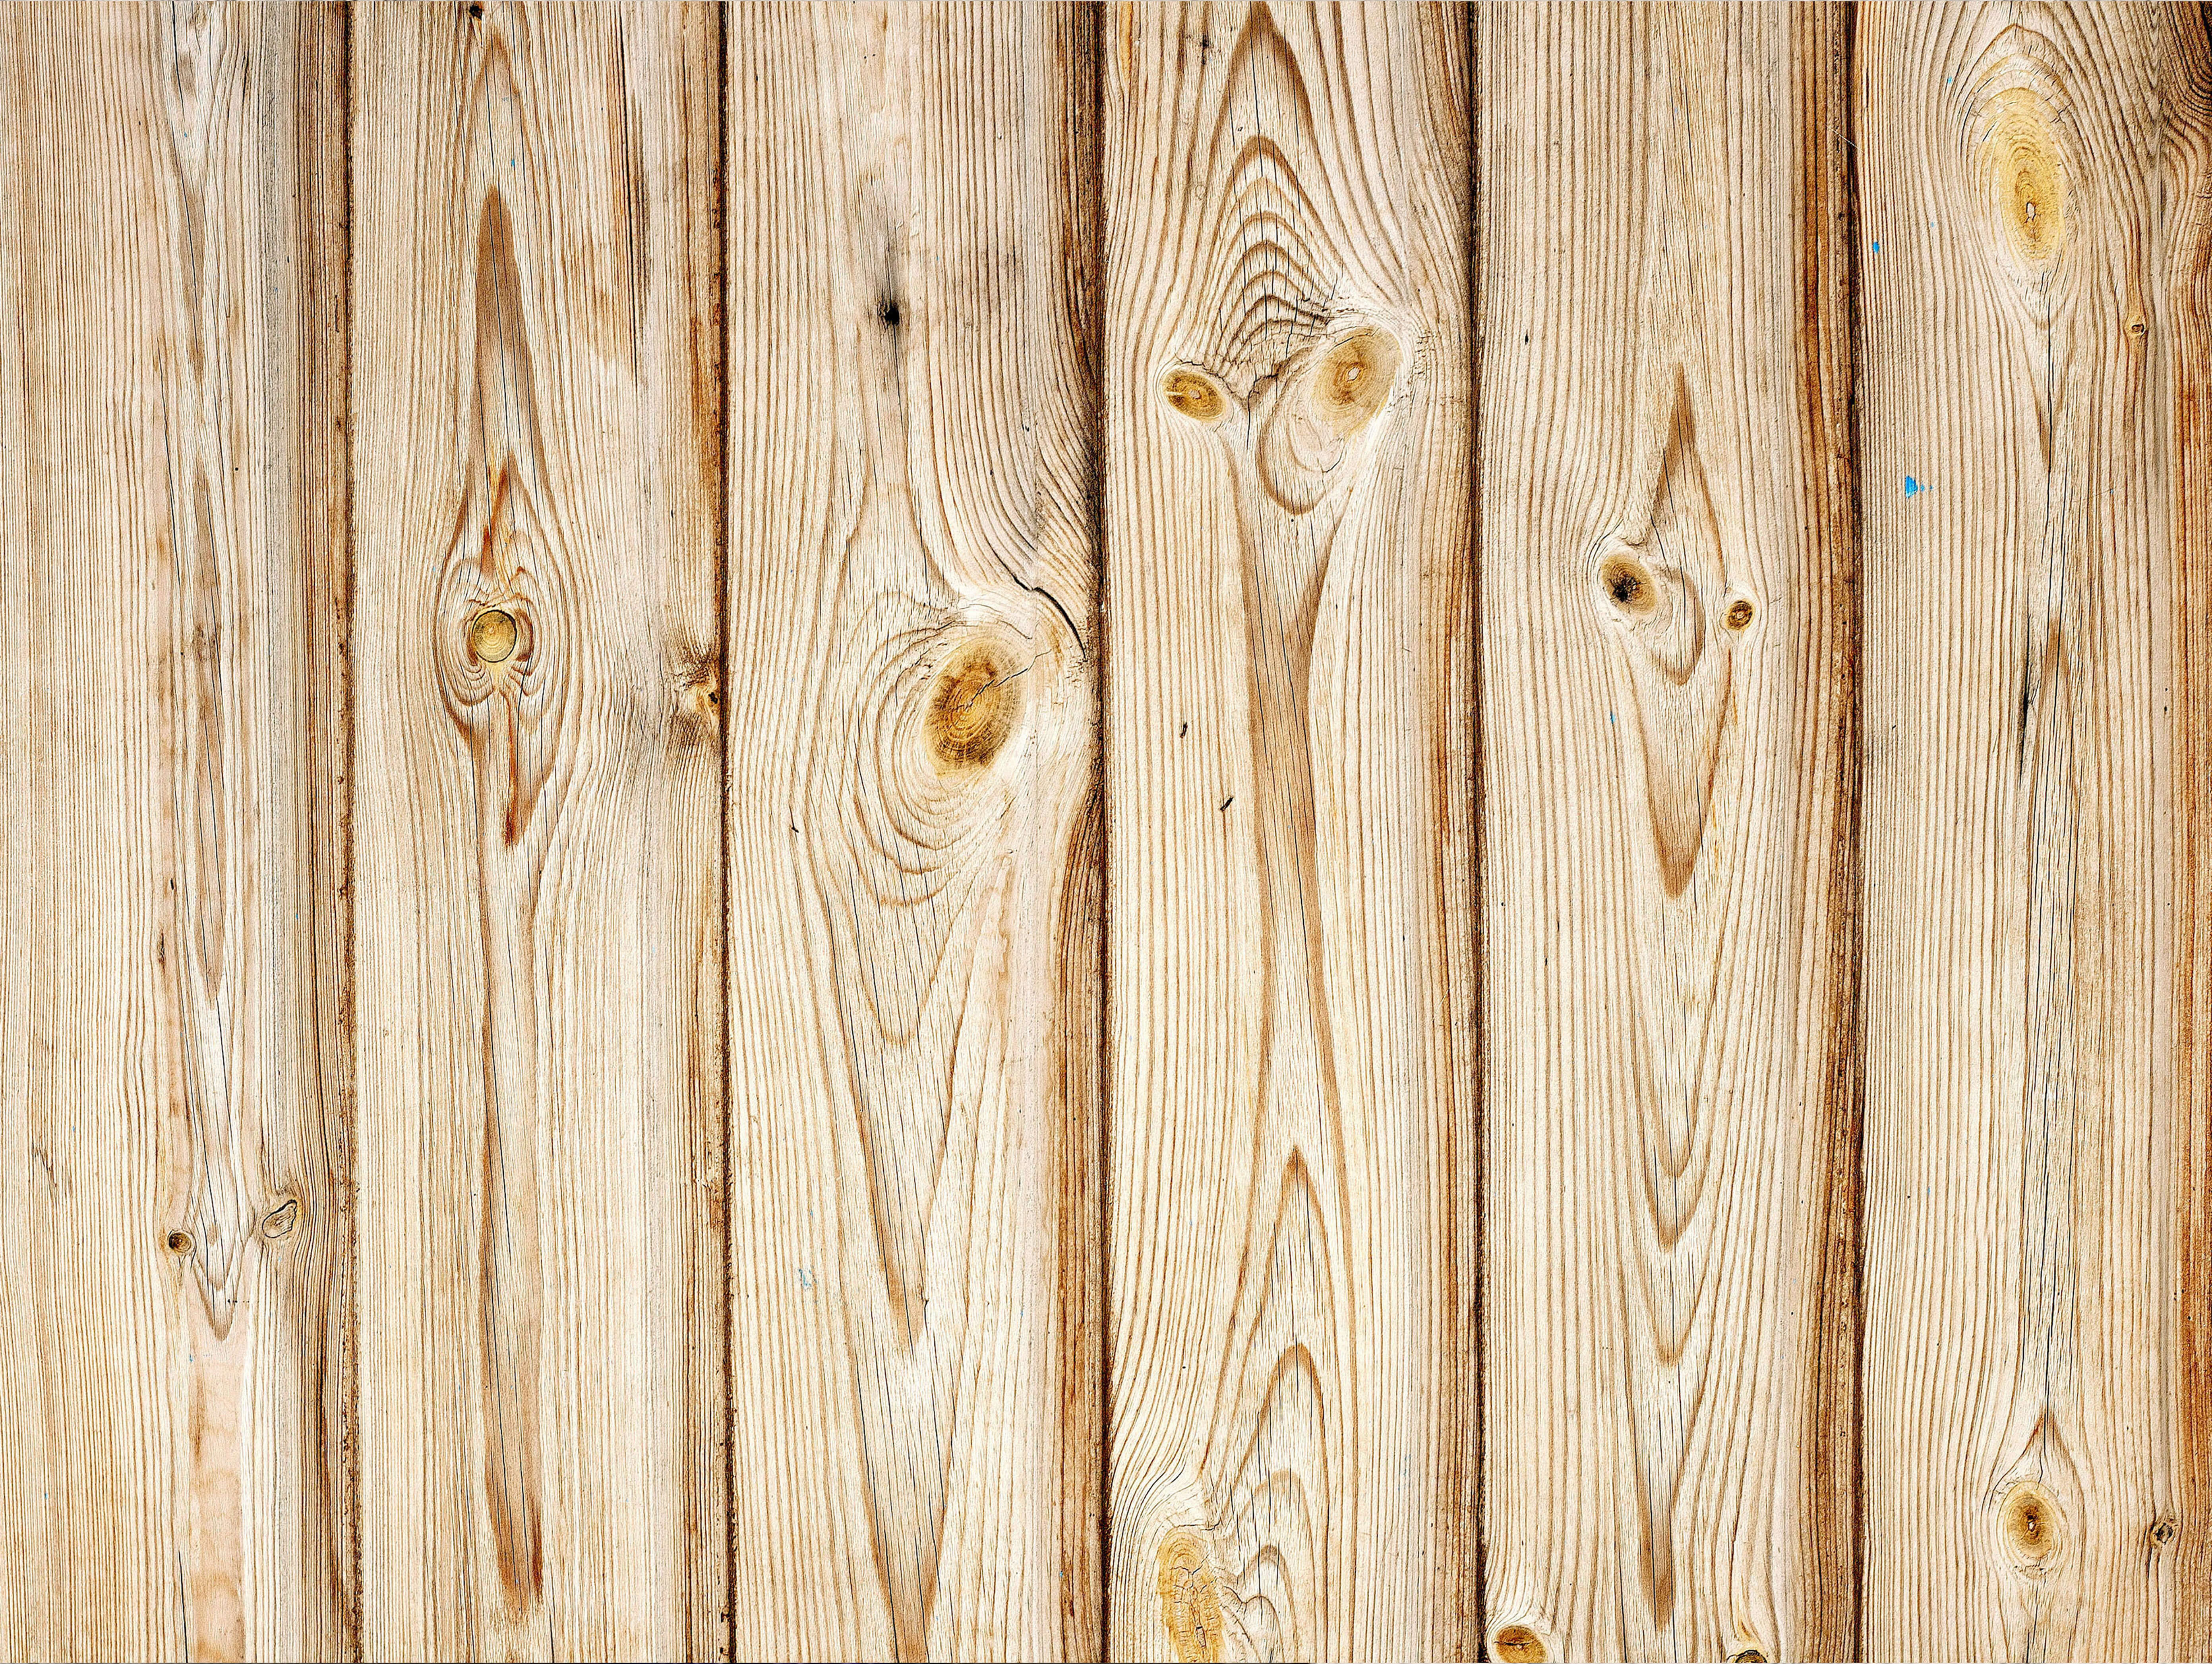 wooden backgrou coloring pages - HD3620×2720